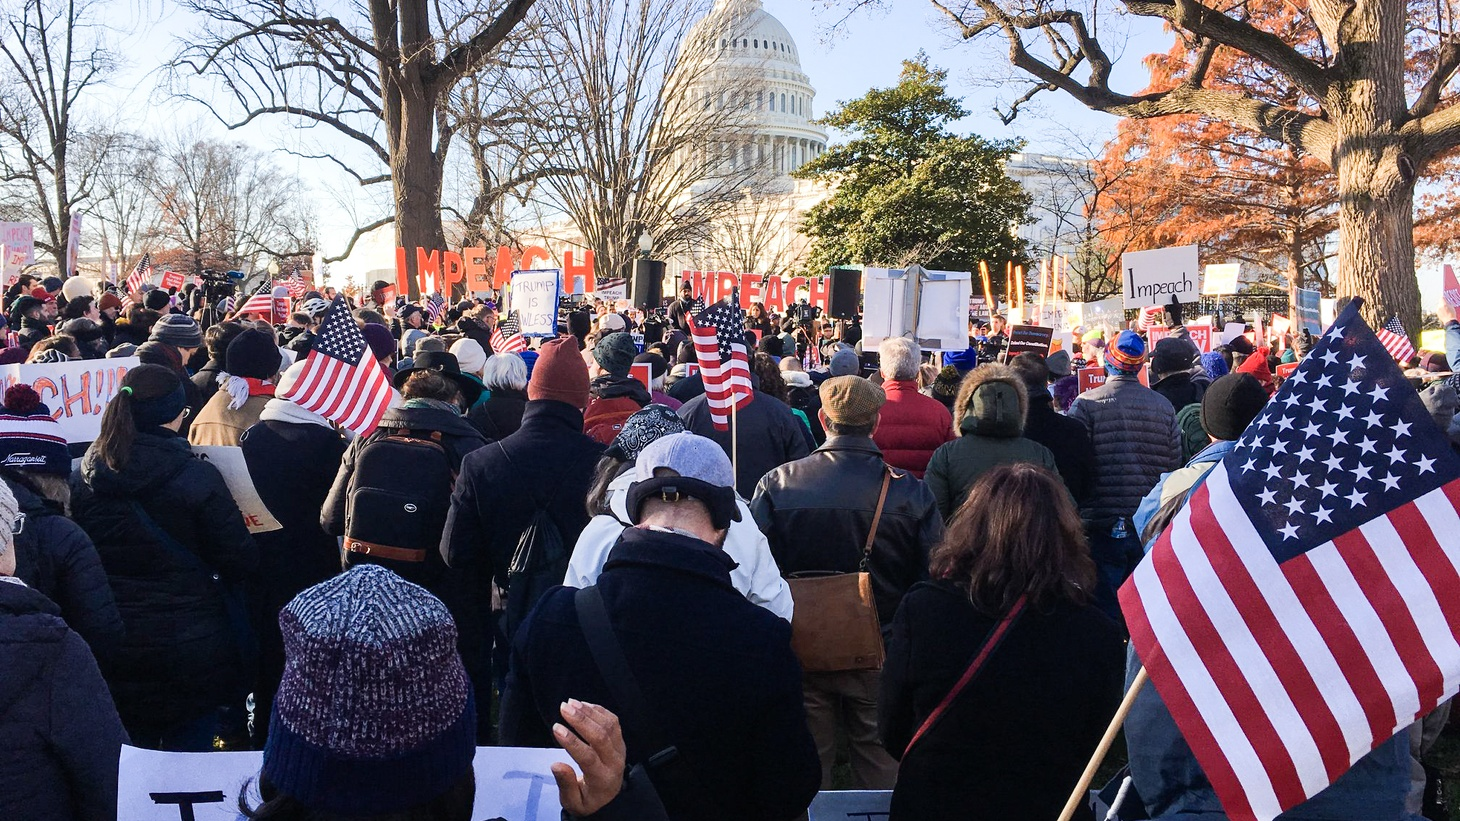 Impeachment rally in front of the U.S. Capitol in Washington D.C., December 18, 2019.